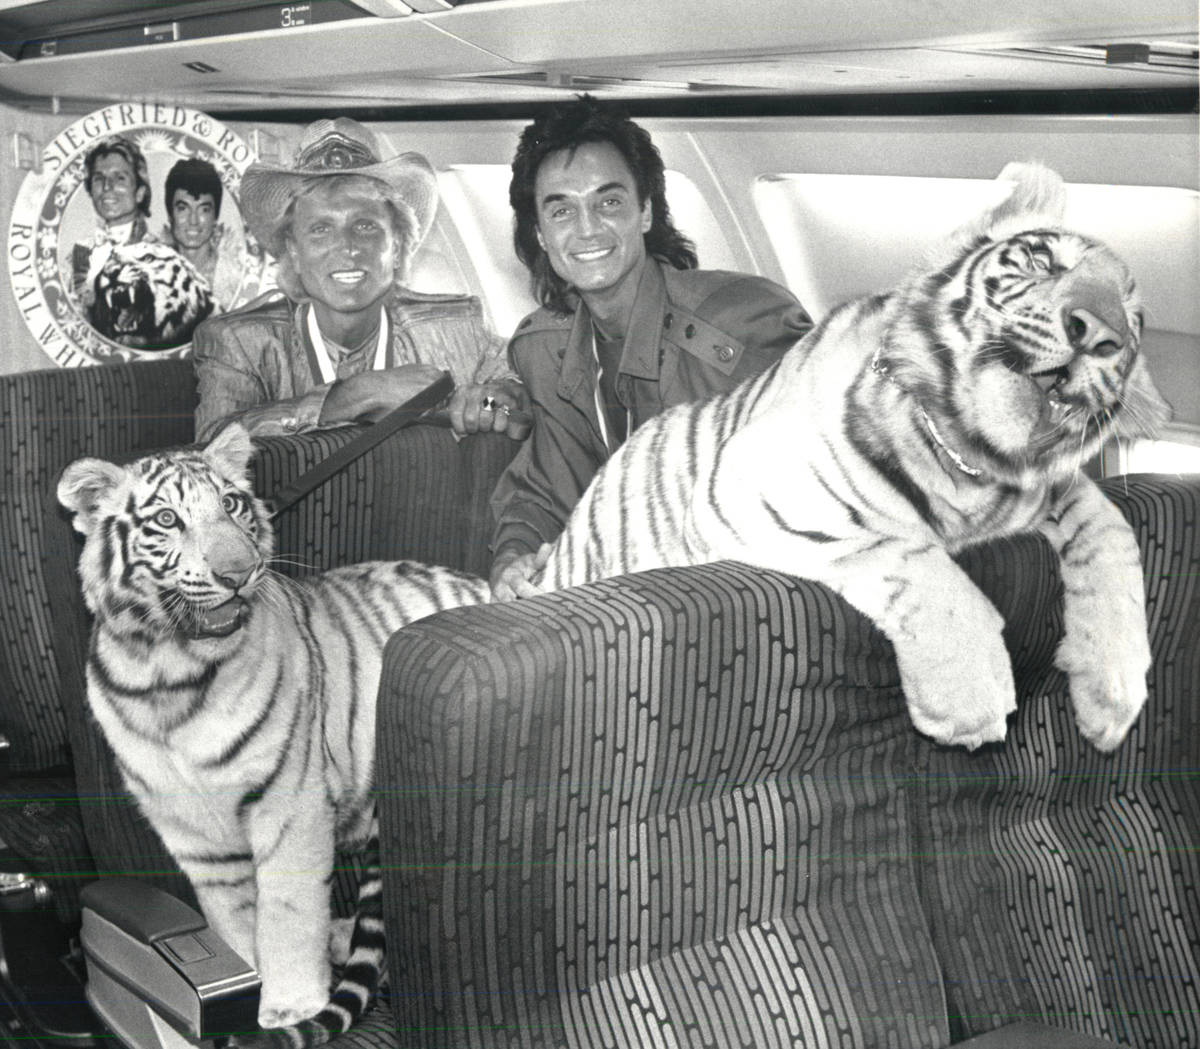 Siegfried and Roy pose for a photo with tiger cubs aboard and airplane in June 1987. (Review-Jo ...